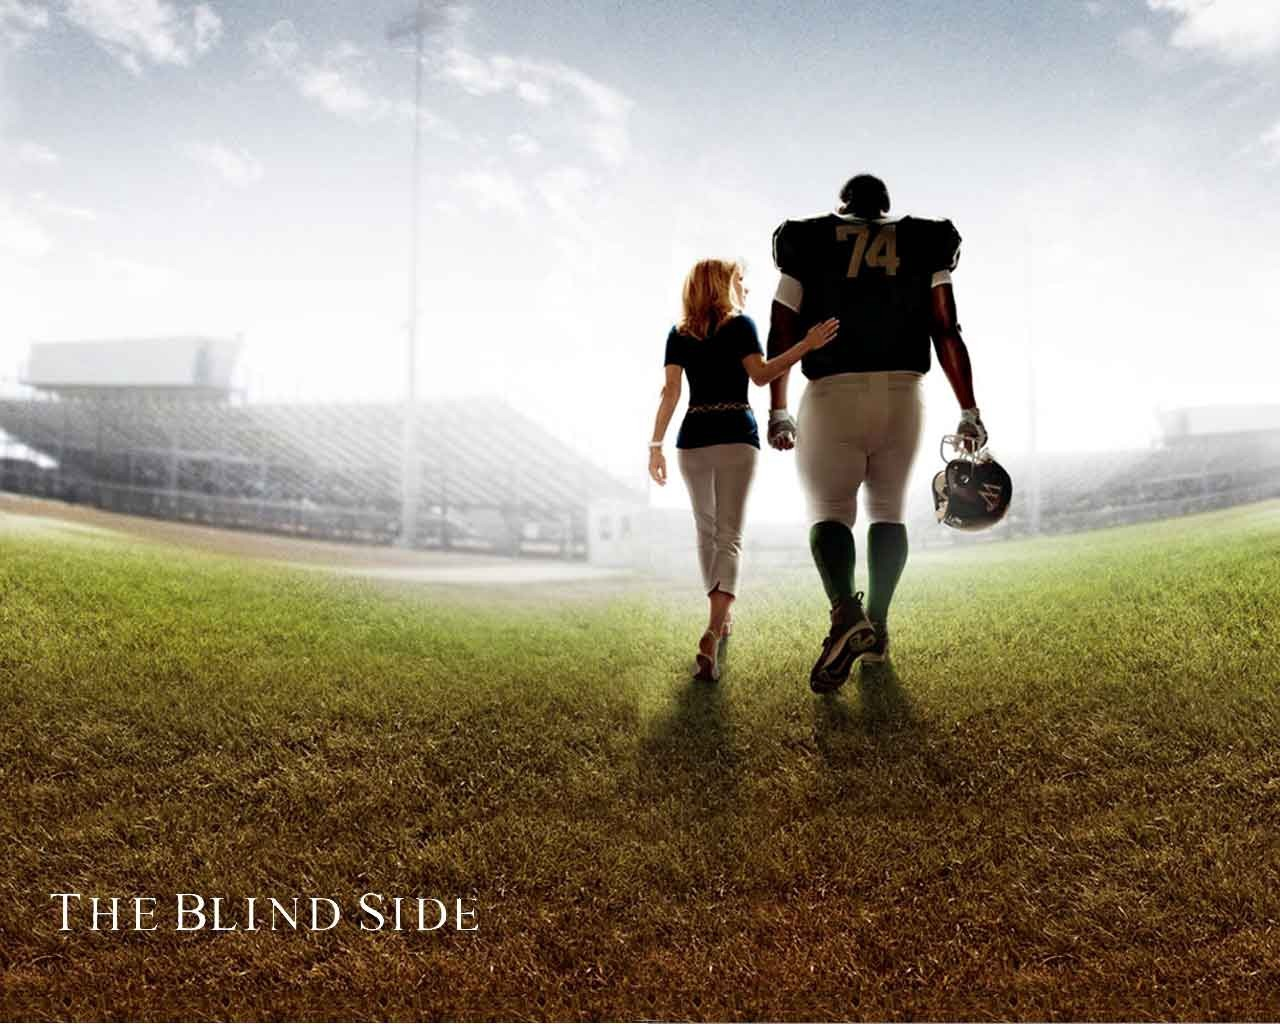 the blind side essay the blind side essay tommy schneider comp  the blind side michael oher essay gxart orgthe blind side michael oher essay home ›